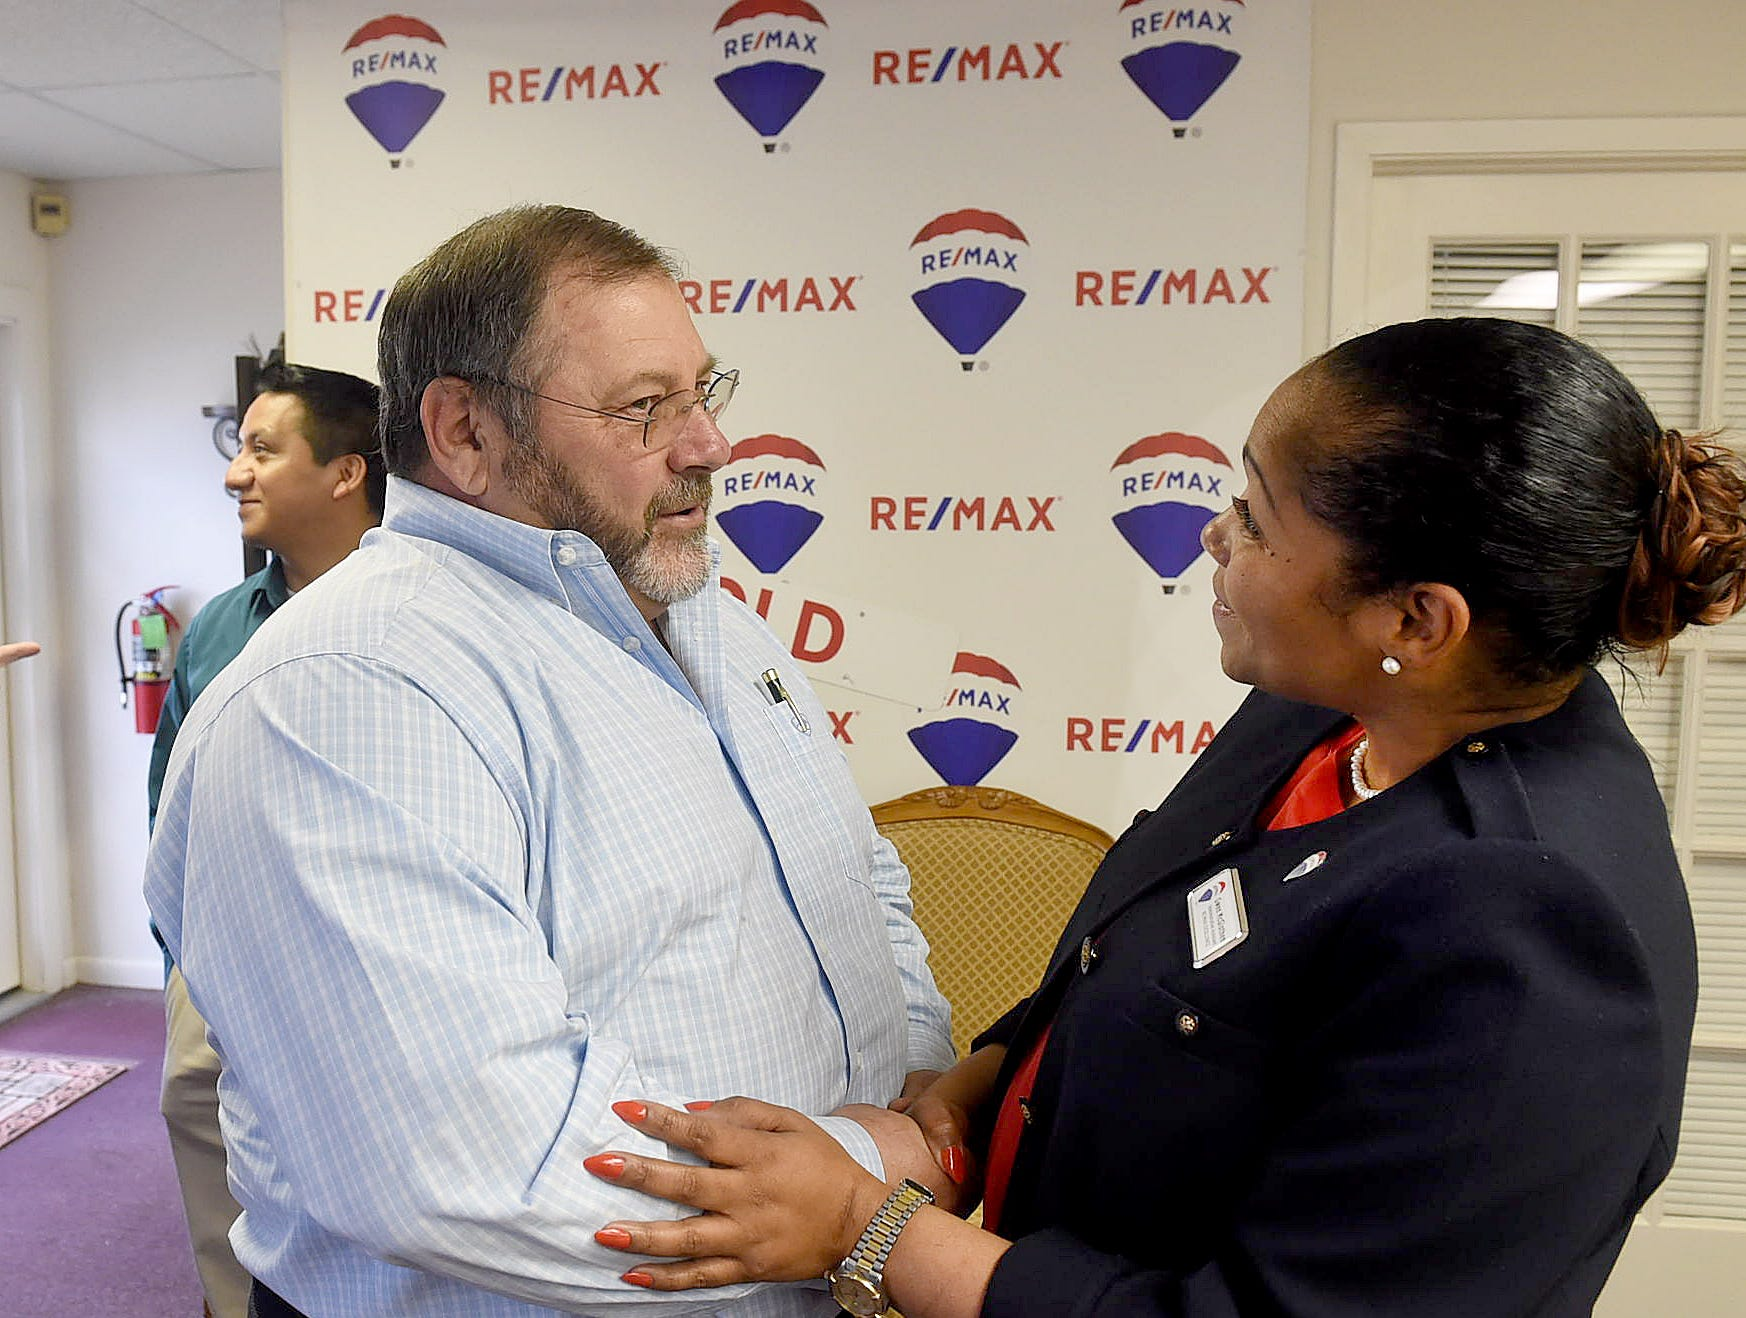 Re/Max Excellence celebrates move to new location Thursday with a ribbon cutting hosted by the St. Landry Chamber of Commerce. Re/Max Excellence is veteran owned and operated and is the first Re/Max franchise in Opelousas. The new location is at I-49 Service Road and Diesi Street in the Park Vista Subdivision area.